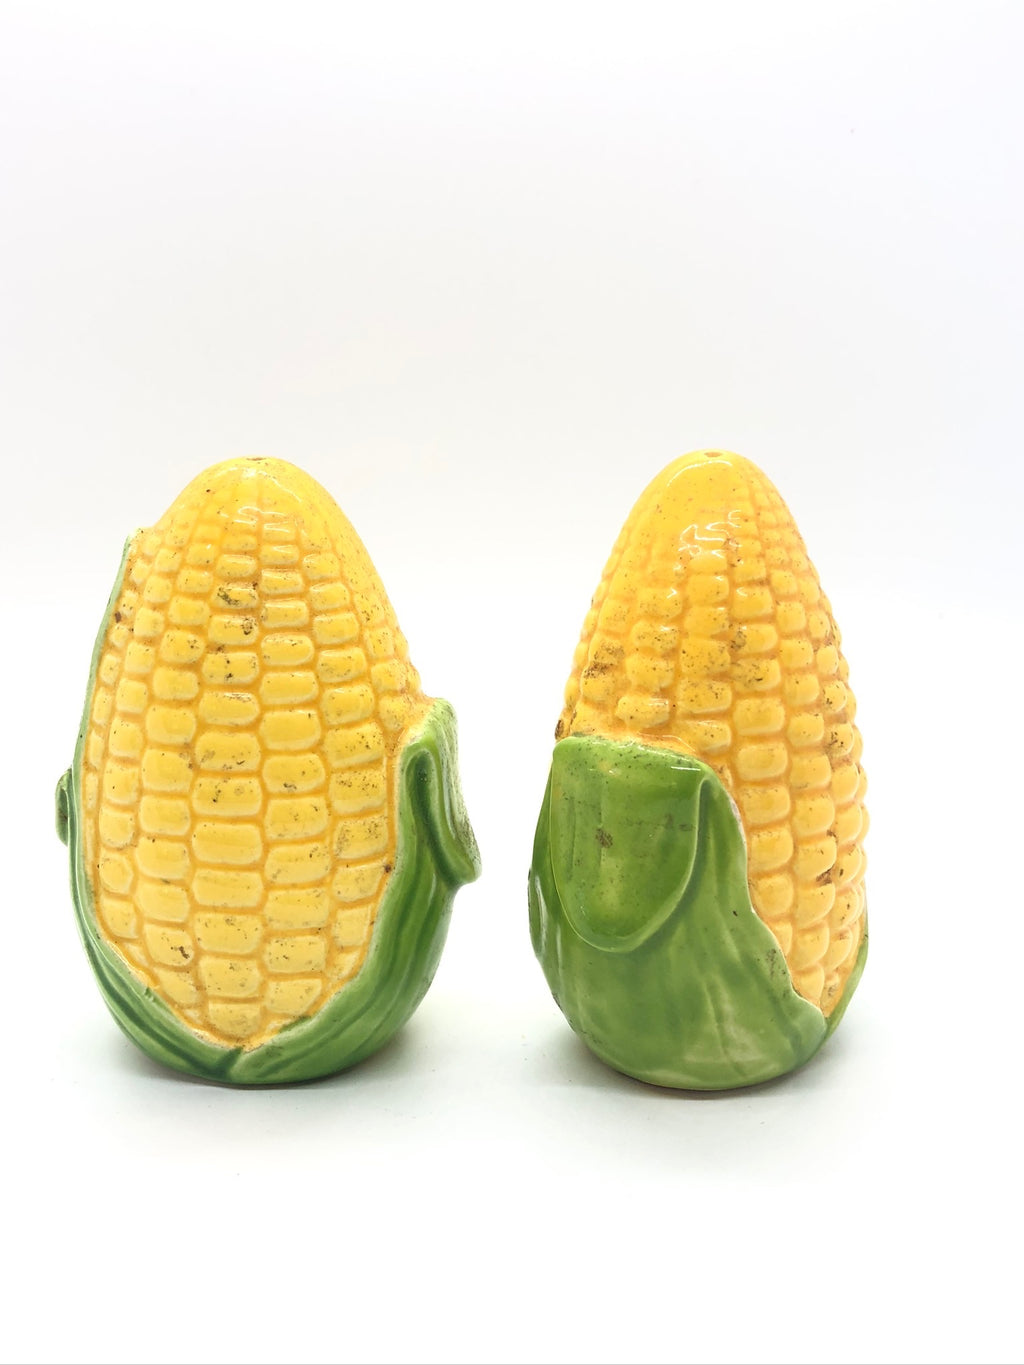 Light Green & Yellow Corn Husk Vintage Salt & Pepper Shakers